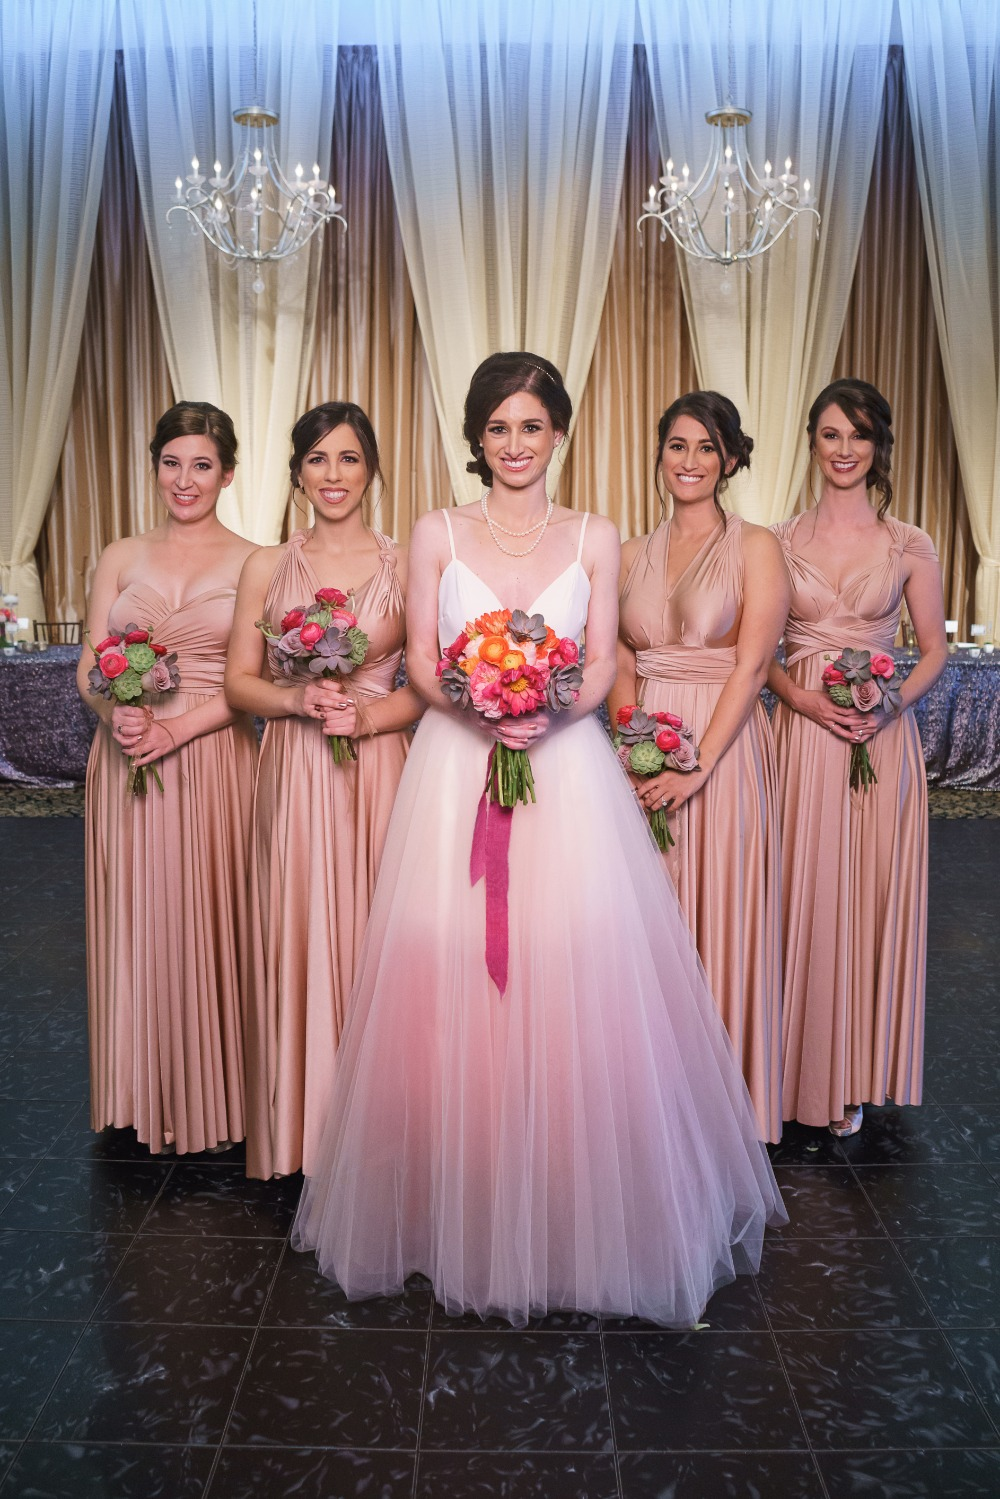 Matching bridesmaids